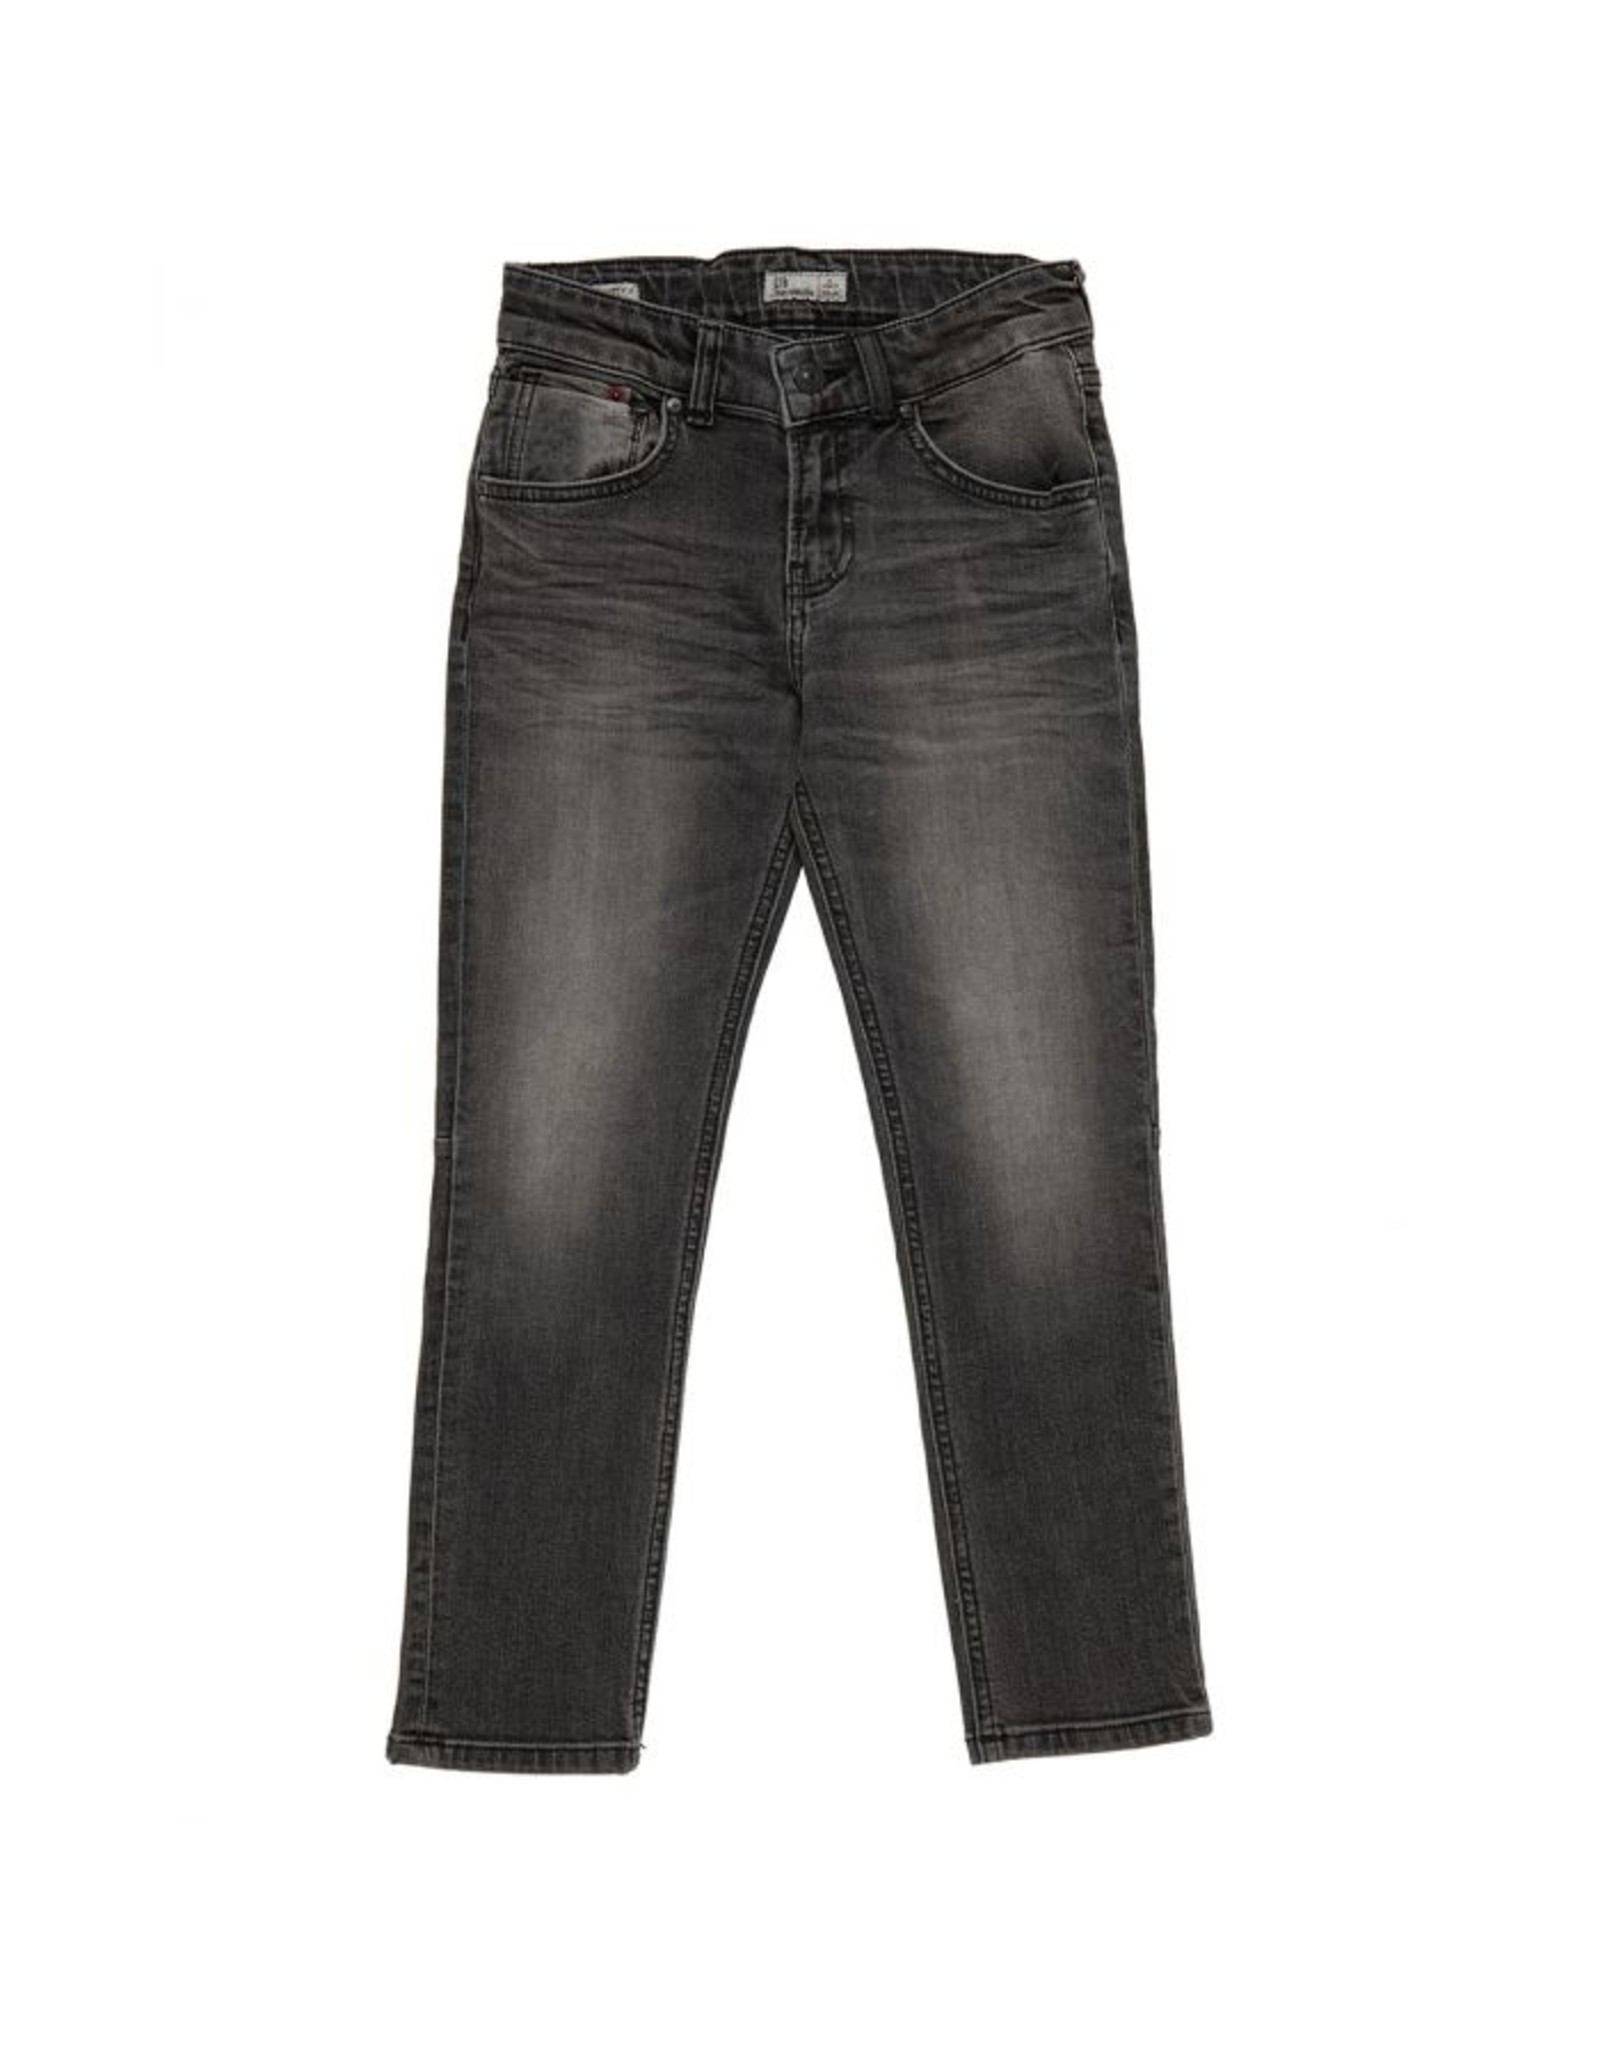 LTB Jeans LTB jeans Smarty  dust wash